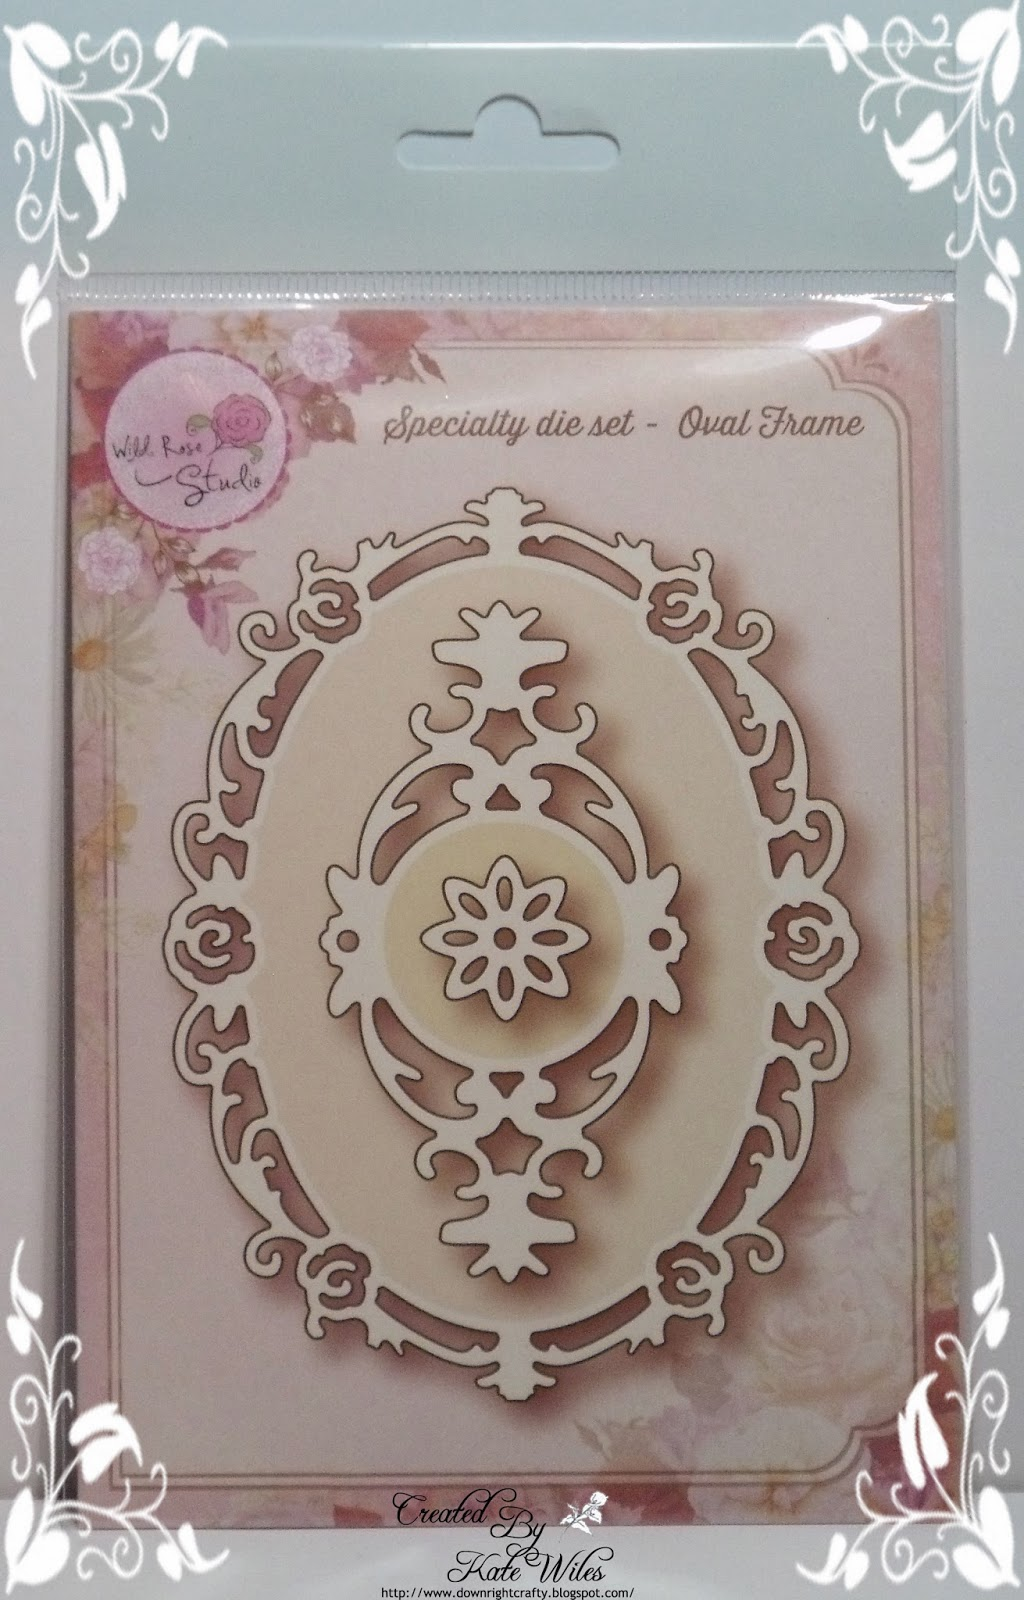 Wonderful new Wild Rose Studio die candy